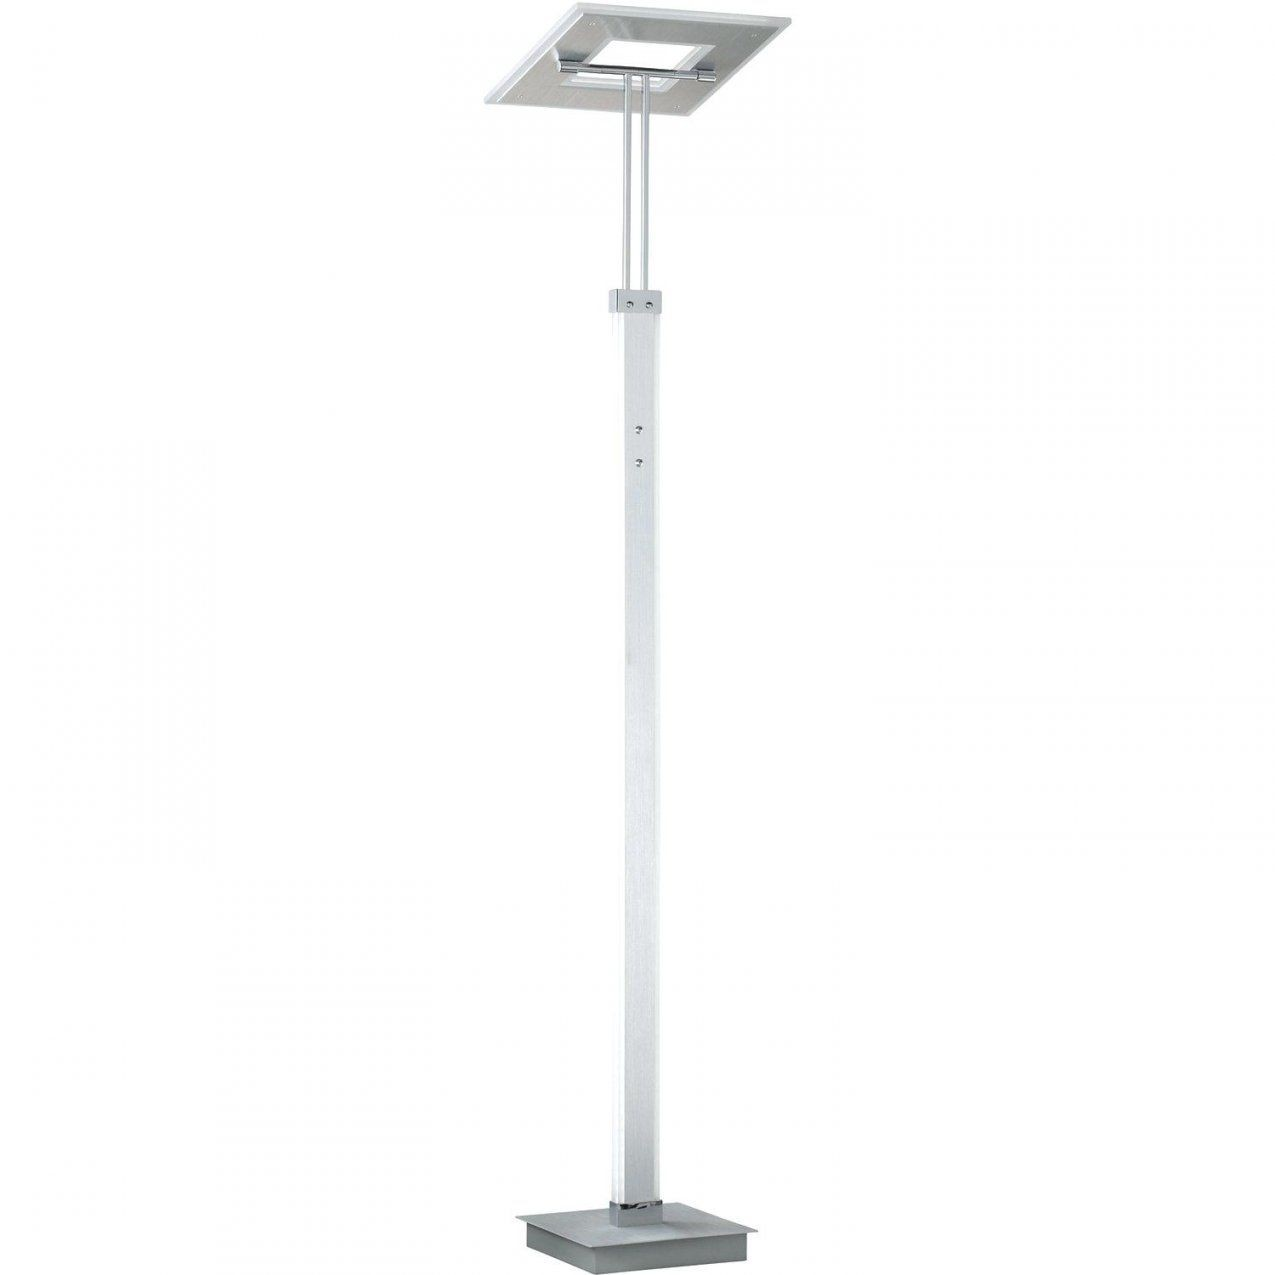 Led Stehleuchte Dimmbar Columbus Inkl Touch Funktion Hahe 168 Cm von Led Stehleuchten Dimmbar Messing Bild